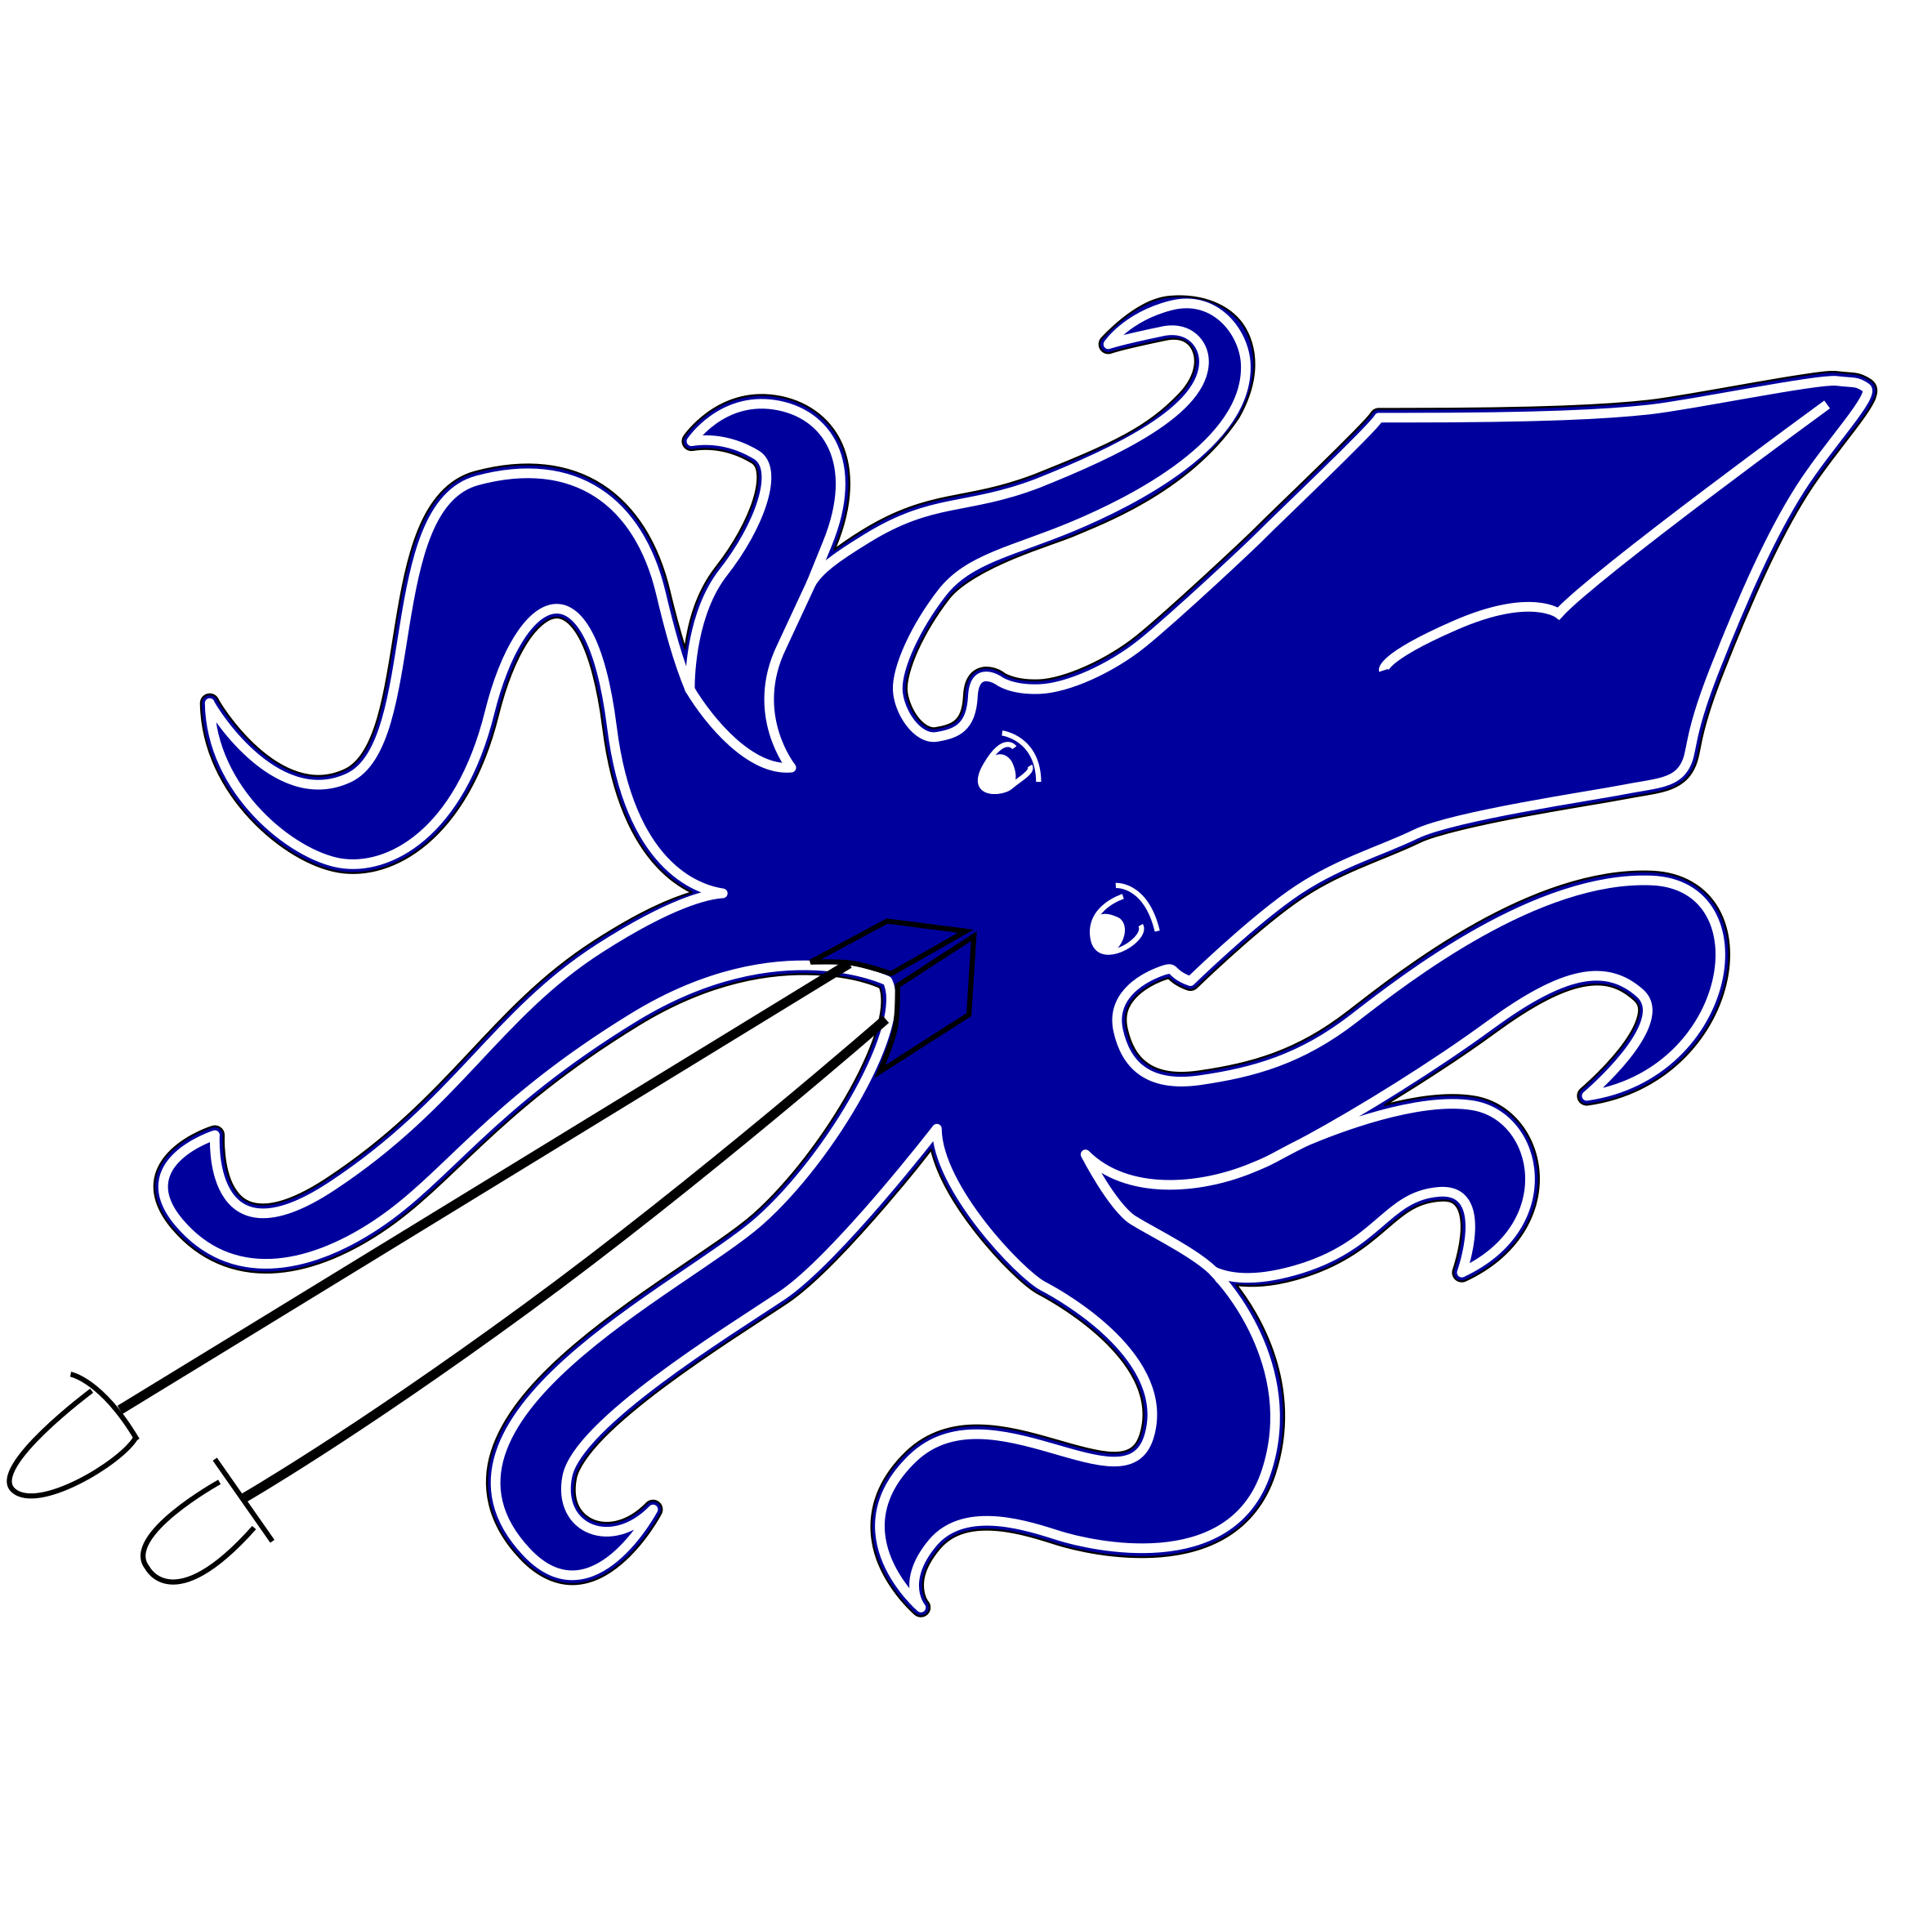 An SVG version of Squid